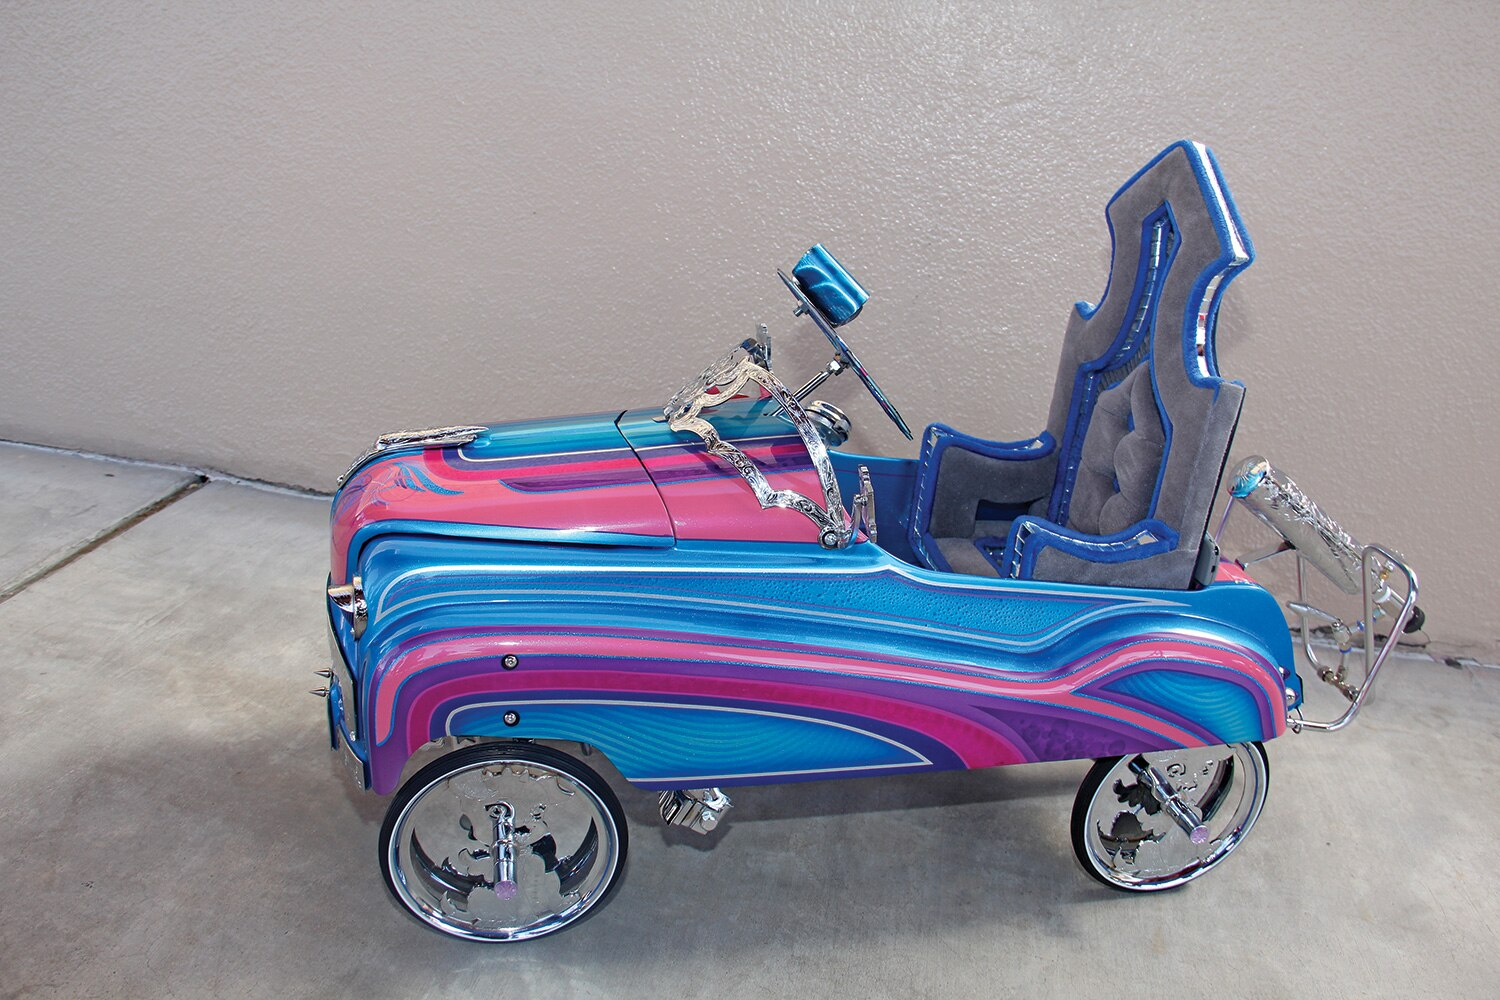 mya-monster-pedal-car-left-side-view-promo